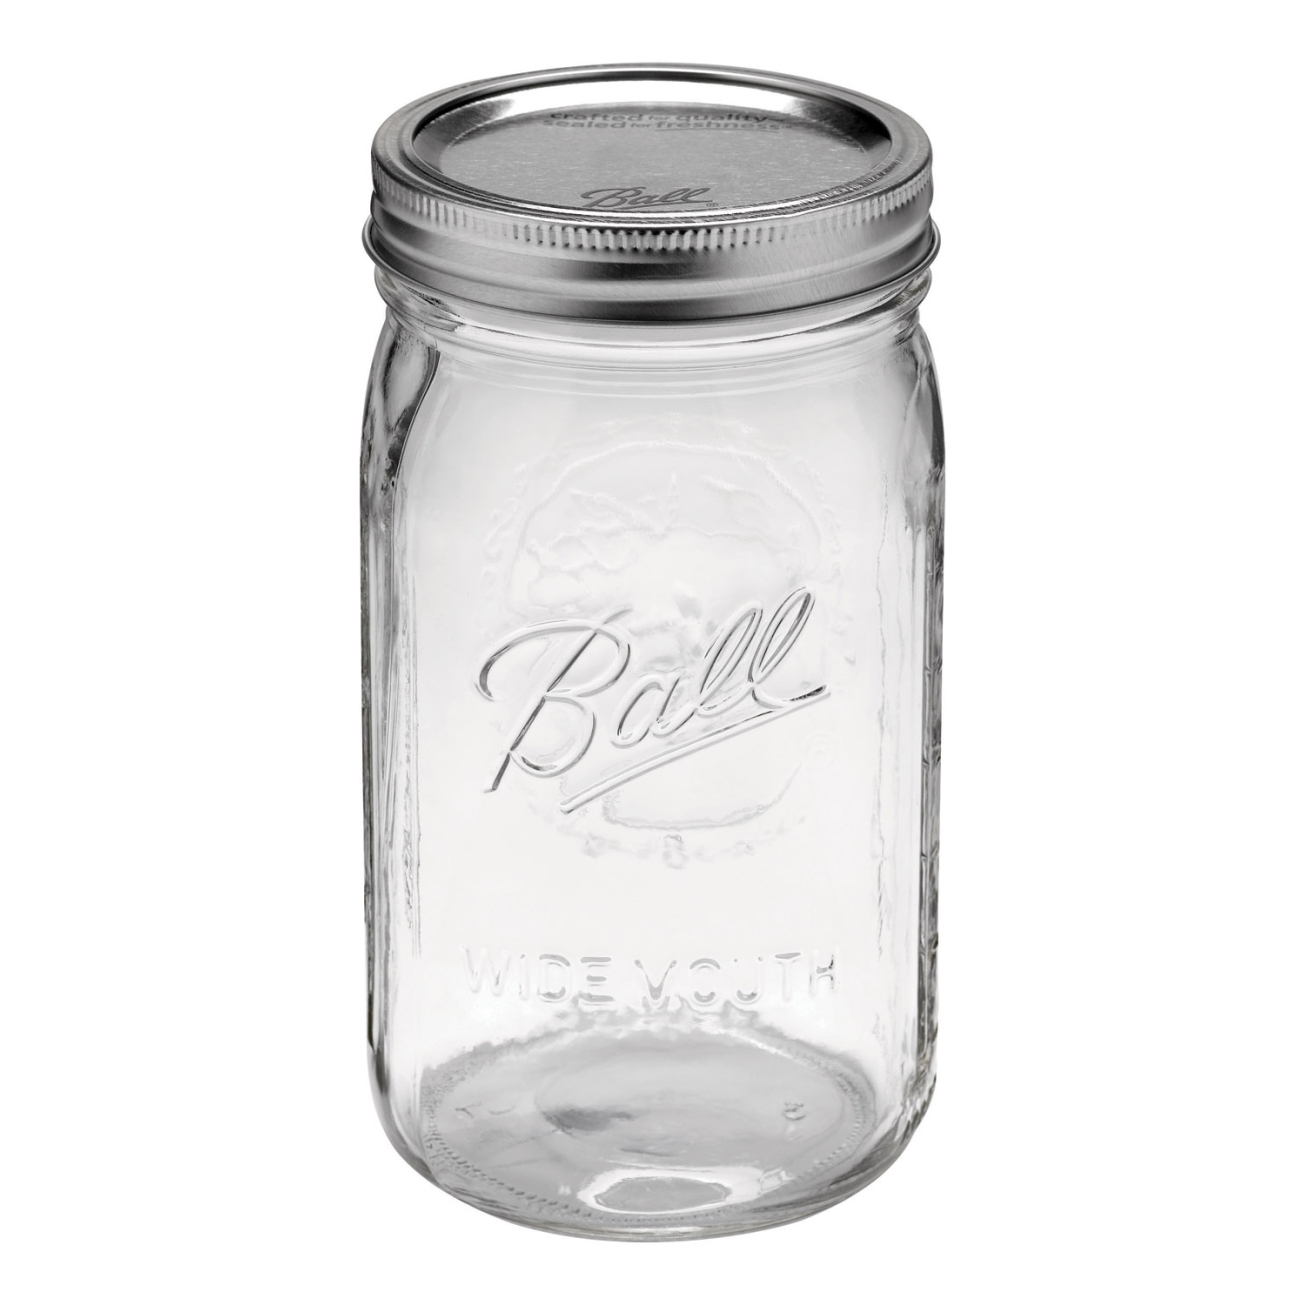 12 x Mason Wide Mouth Canning Jars Quart (32 oz) - Brow ...